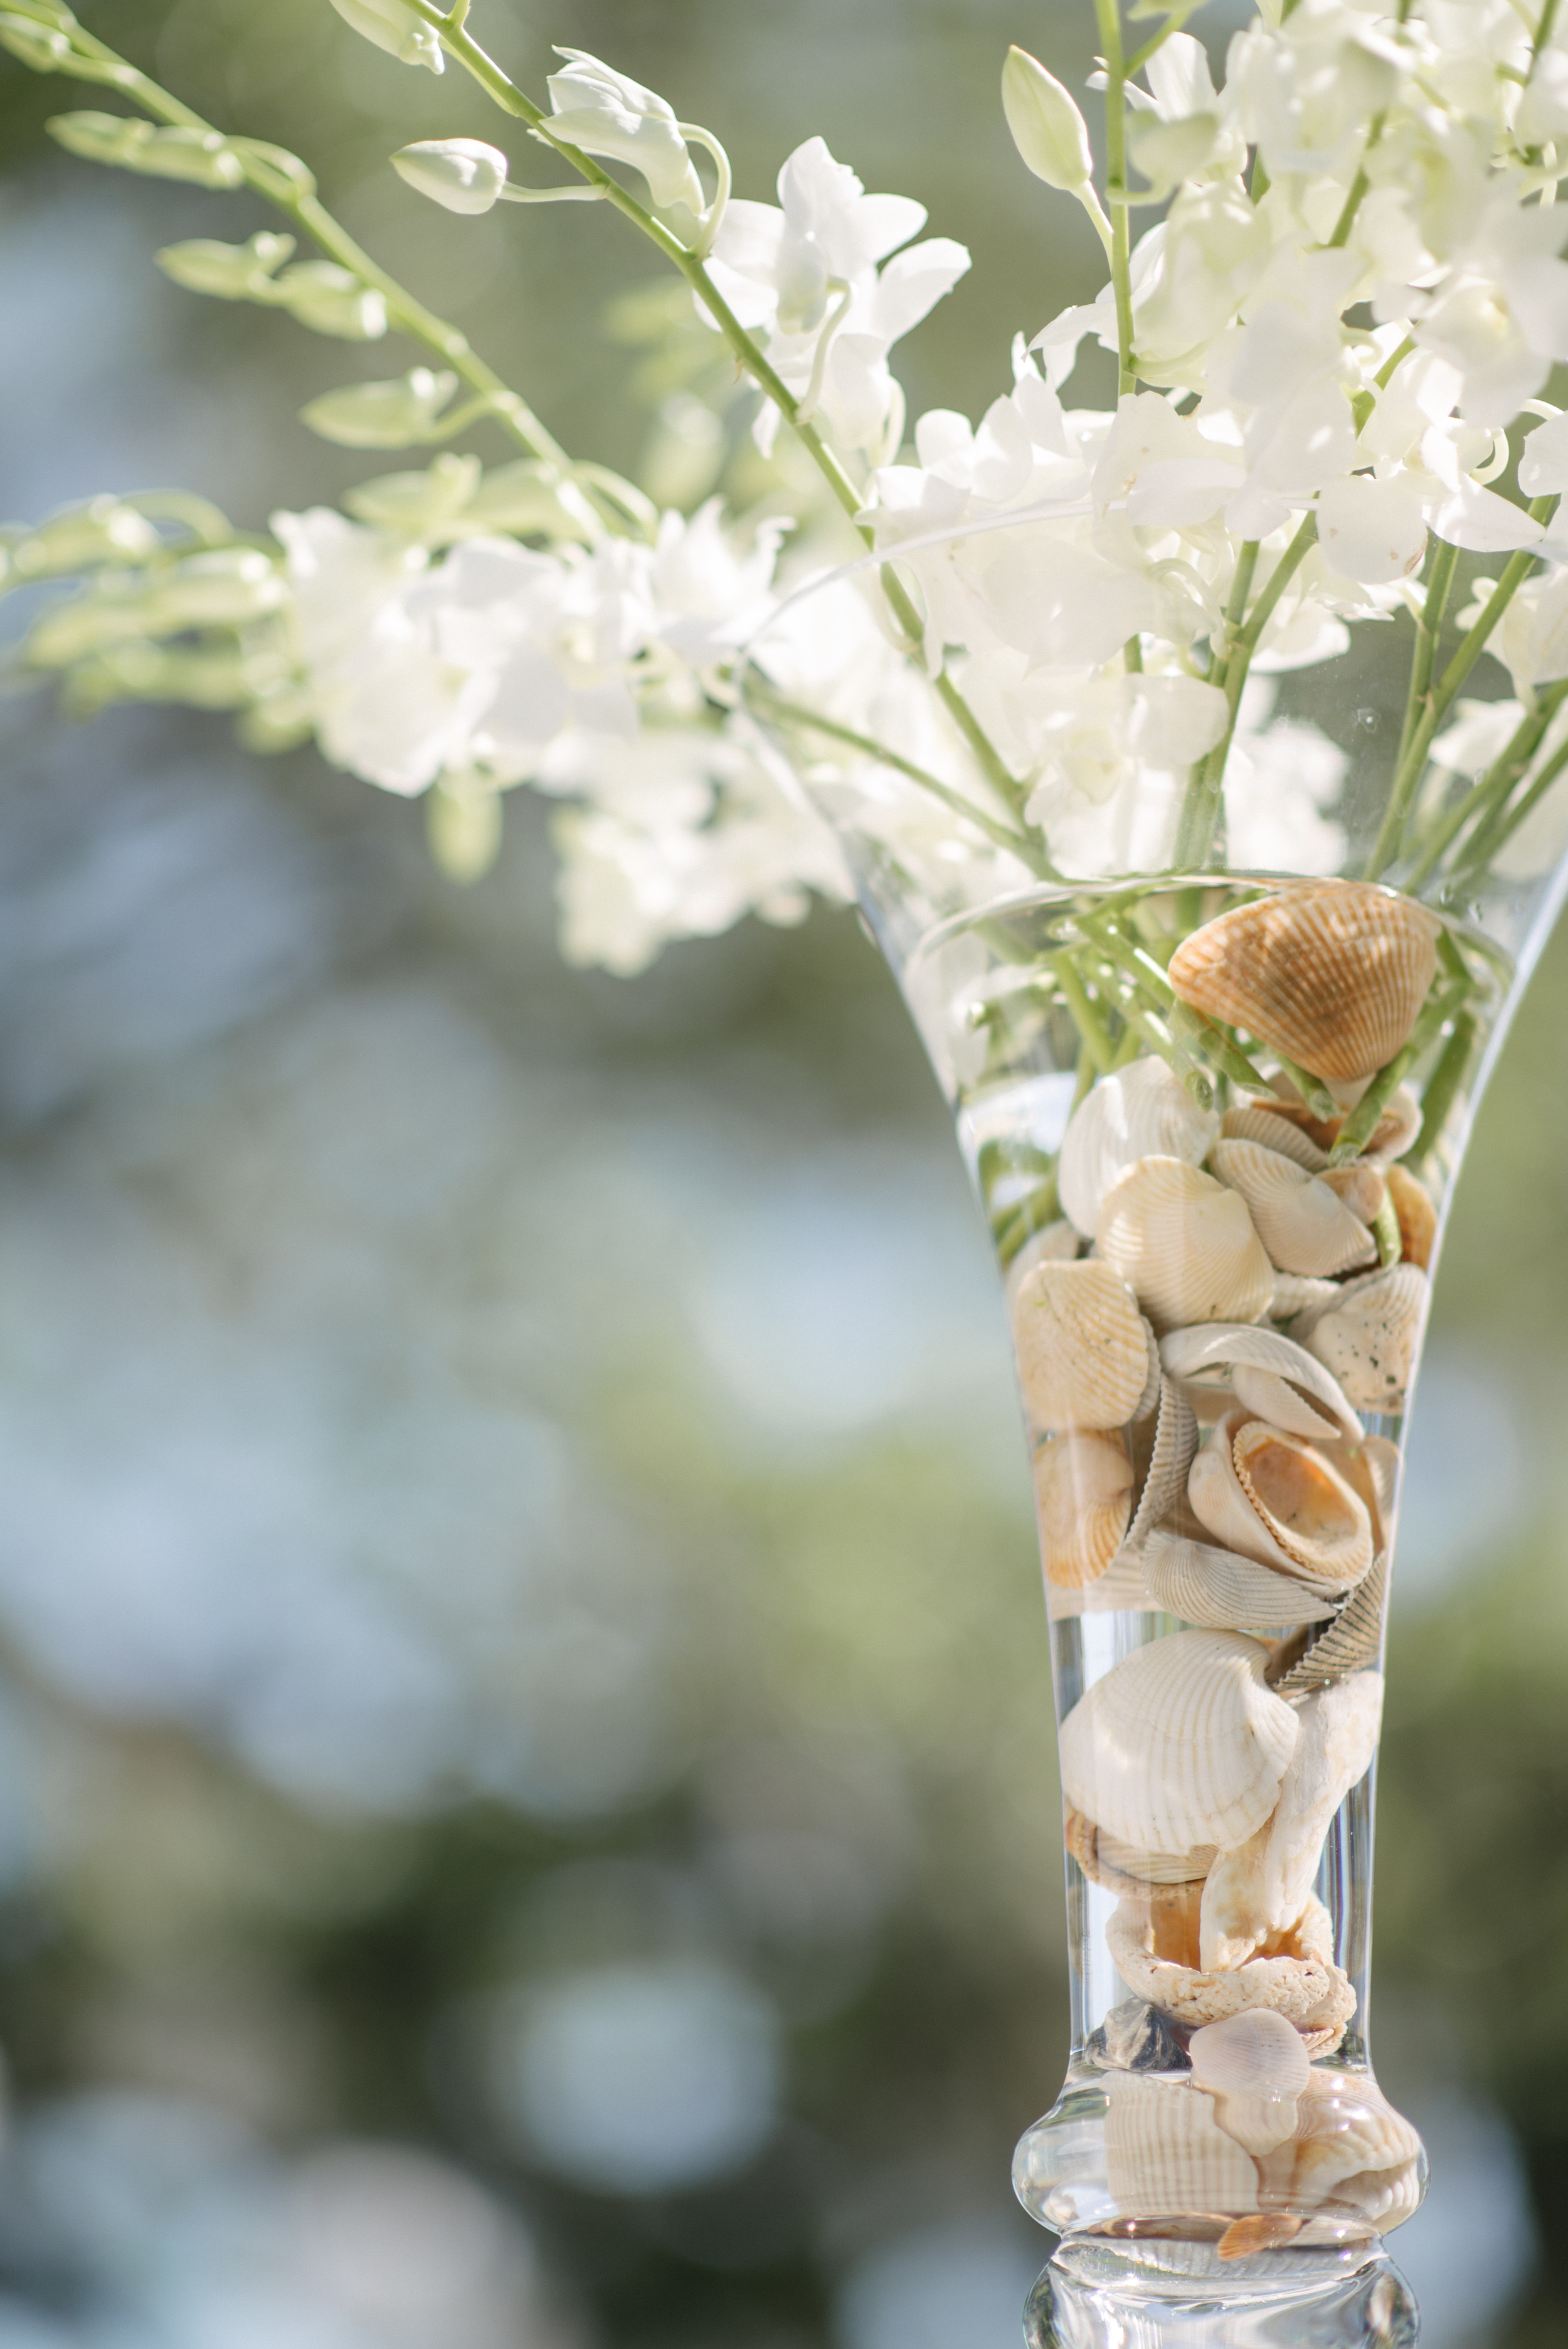 I collected the shells off the beach for the tall arrangements. I used tons of whitedendrobium orchids at the Rehearsal Dinner, then added tons more for the reception.